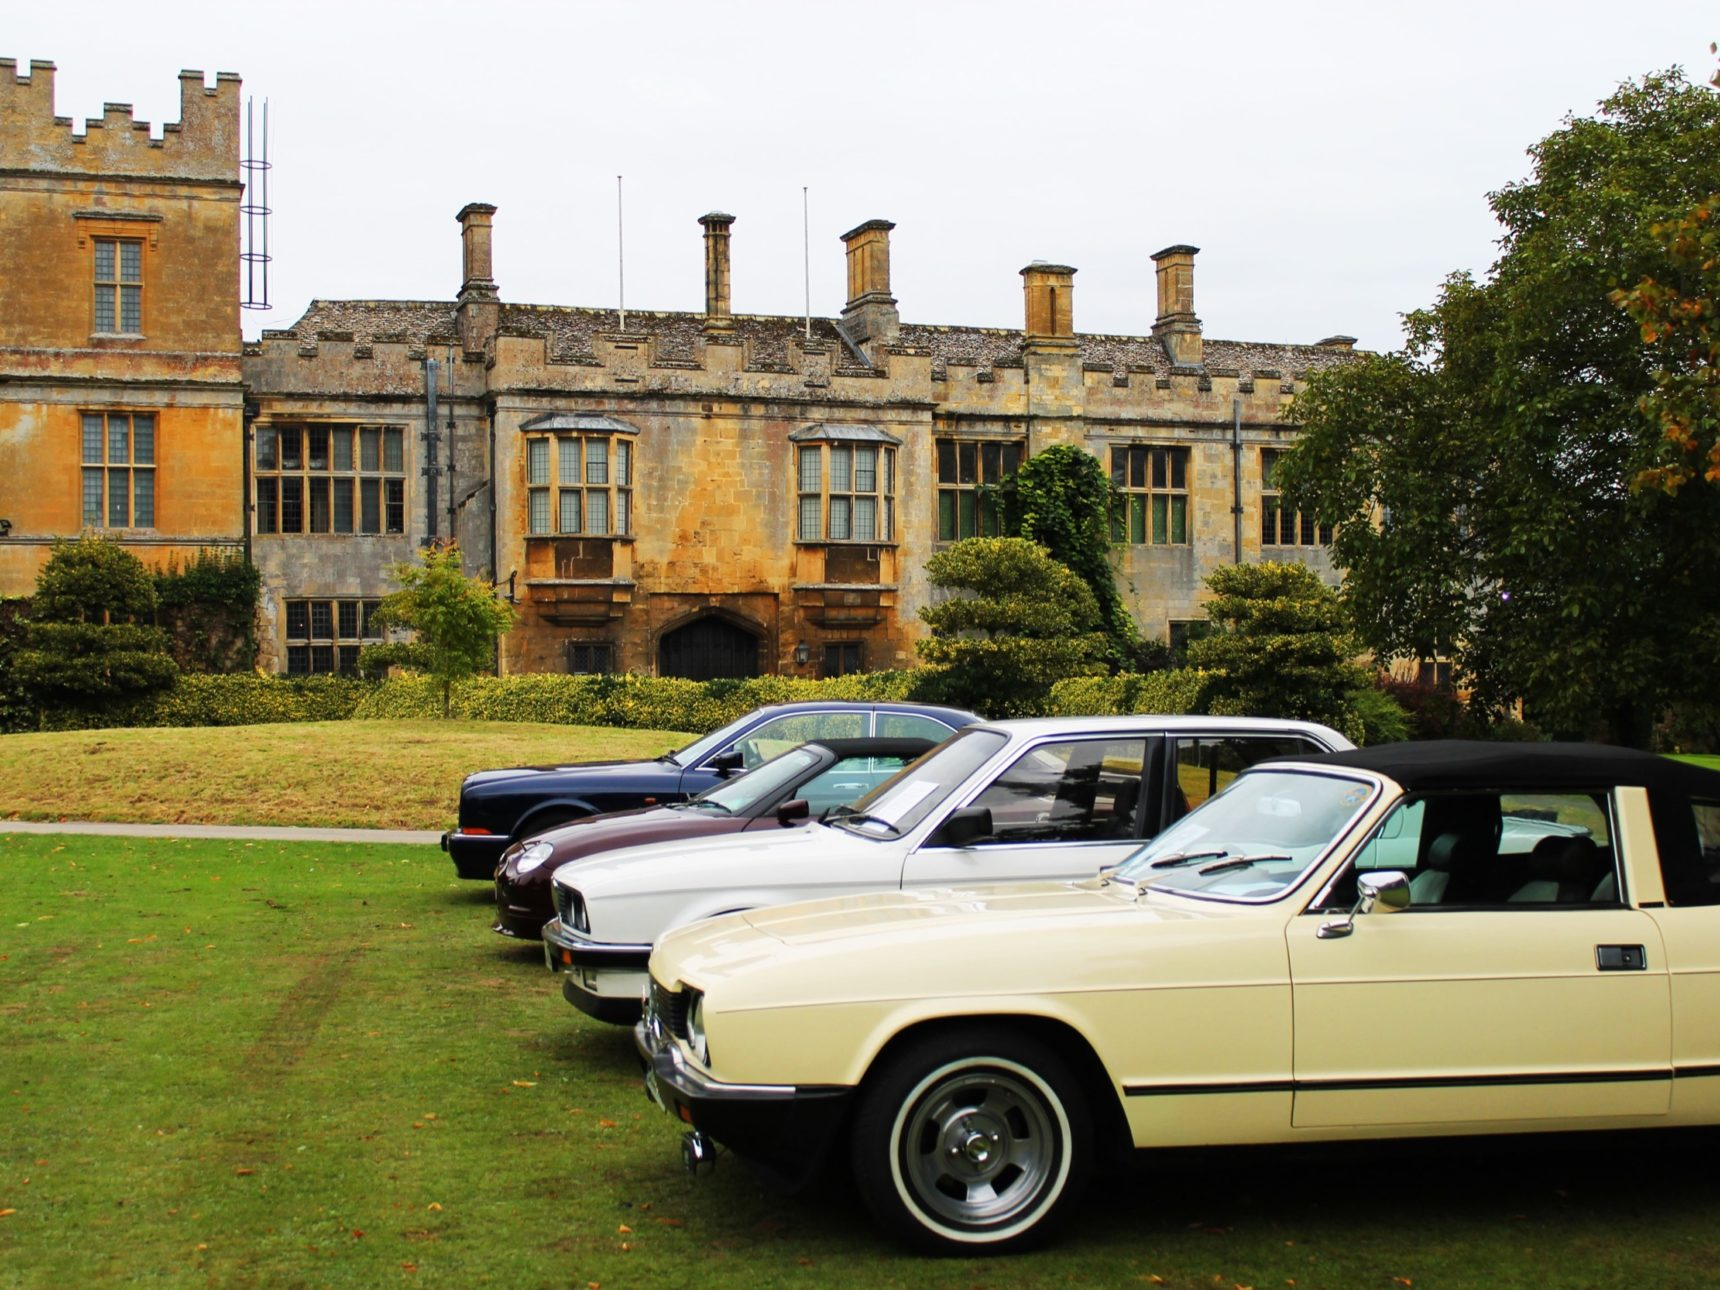 A selection of vintage cars sit on the lawn in front of the castle